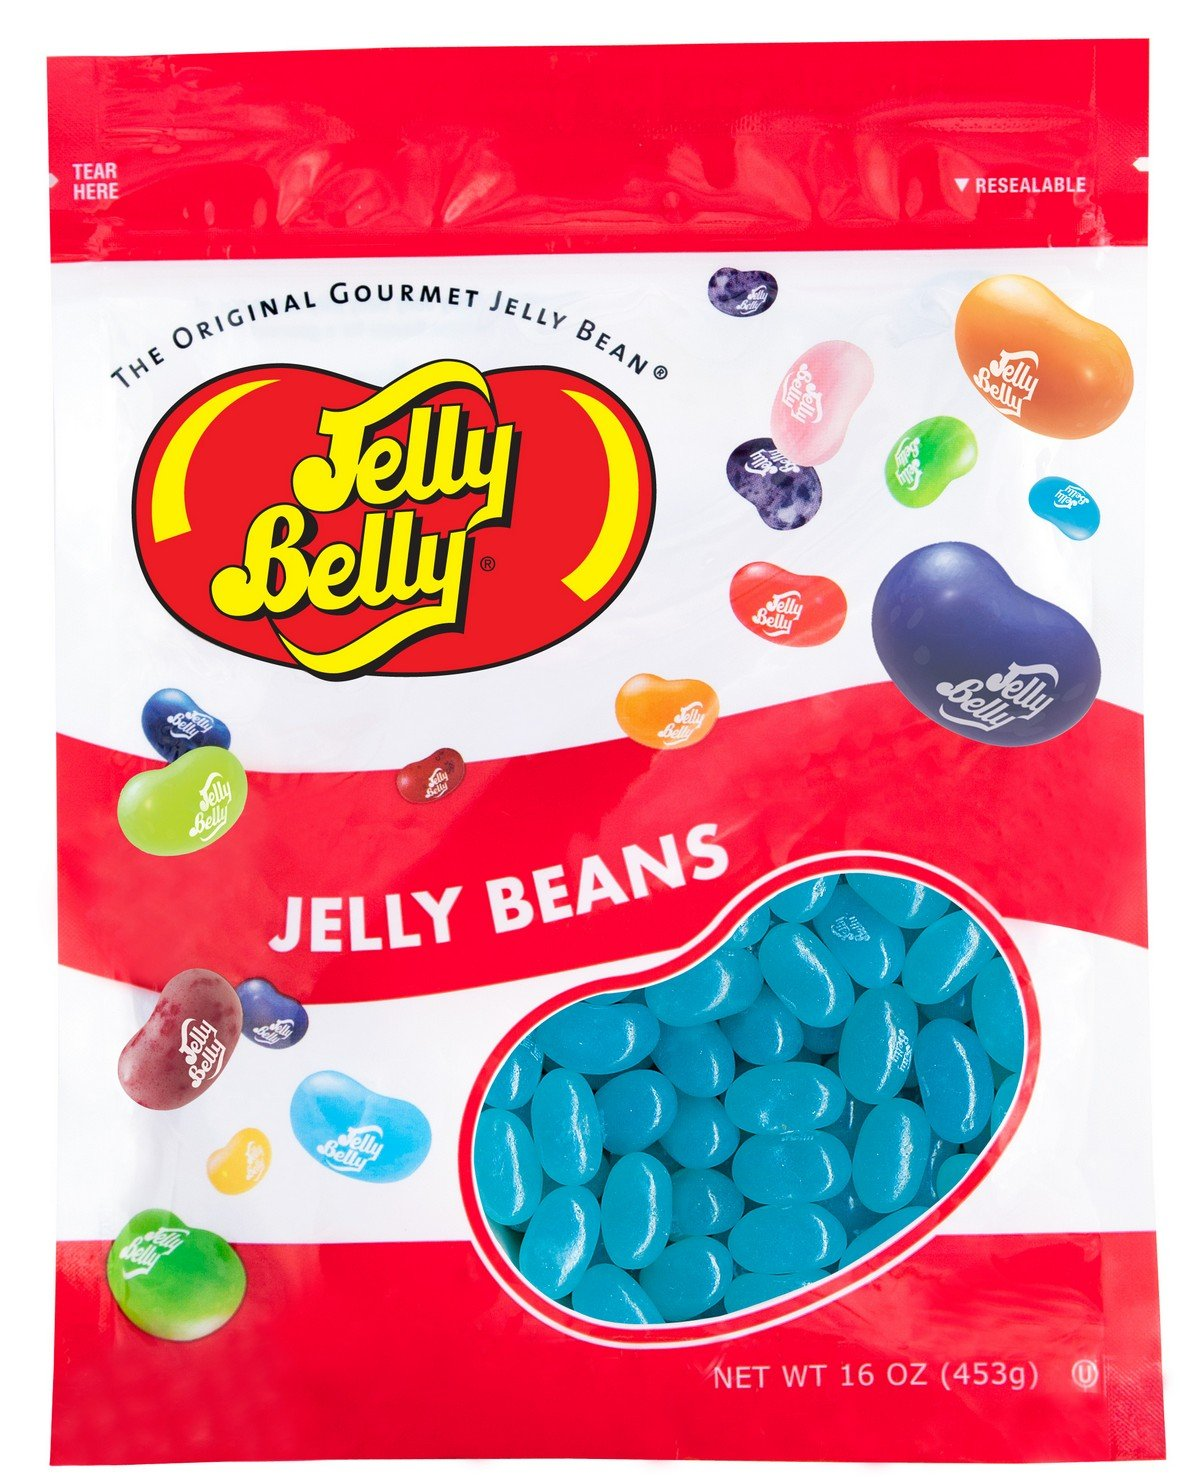 Jelly Belly Berry Blue Jelly Beans - 1 Pound (16 Ounces) Resealable Bag - Genuine, Official, Straight from the Source